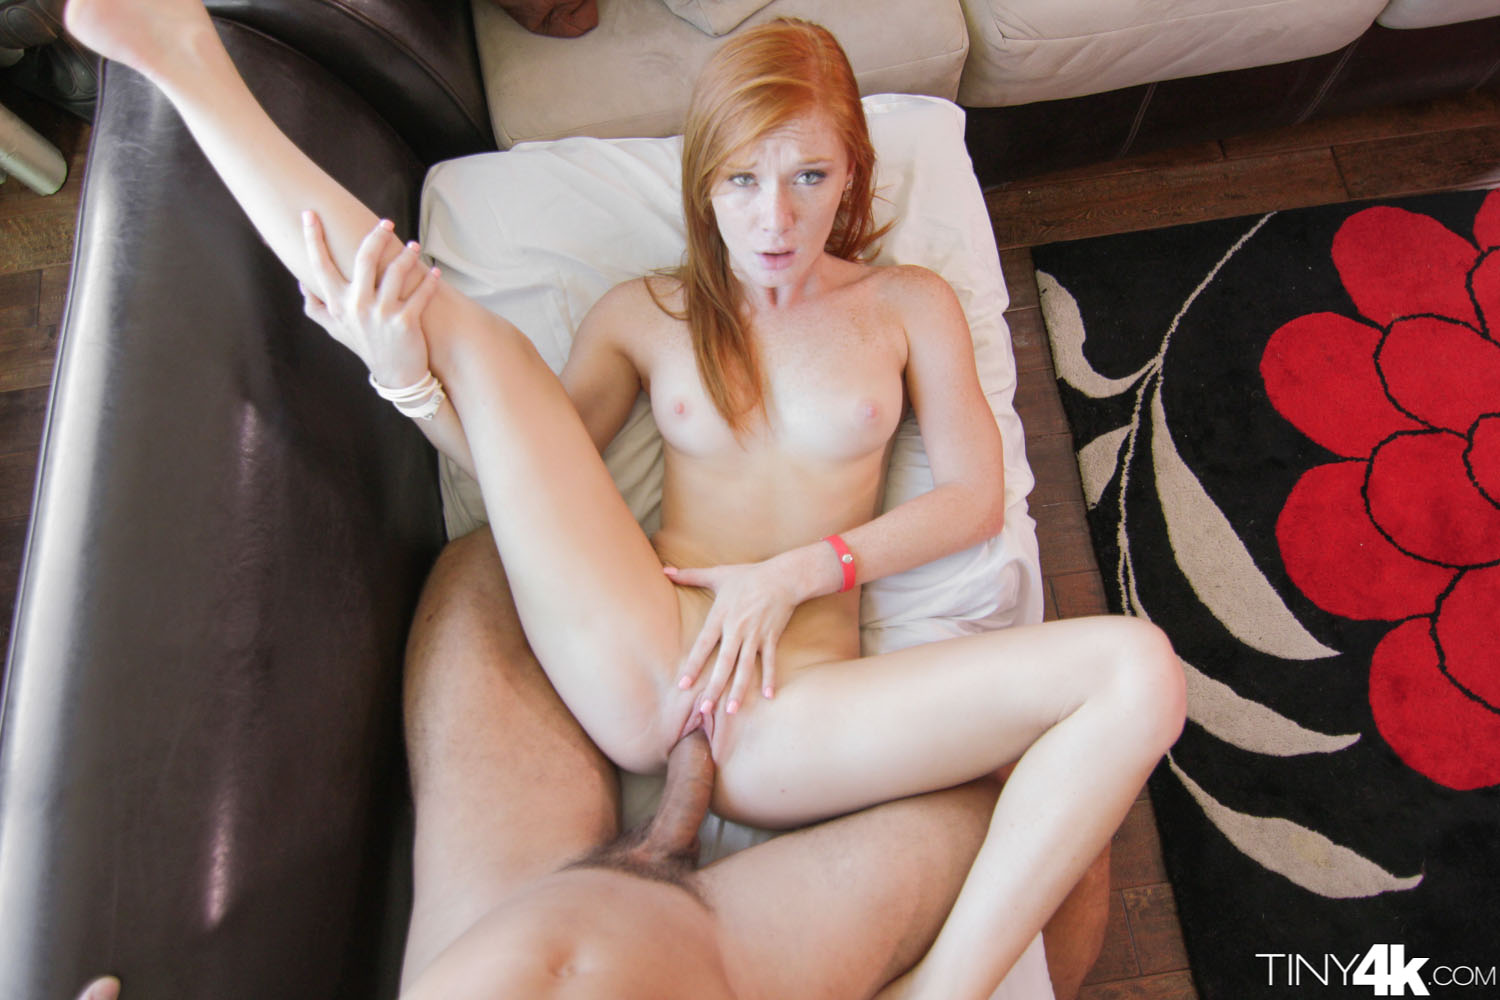 4k tiny redhead gets pummeled by 12 inch black cock 1